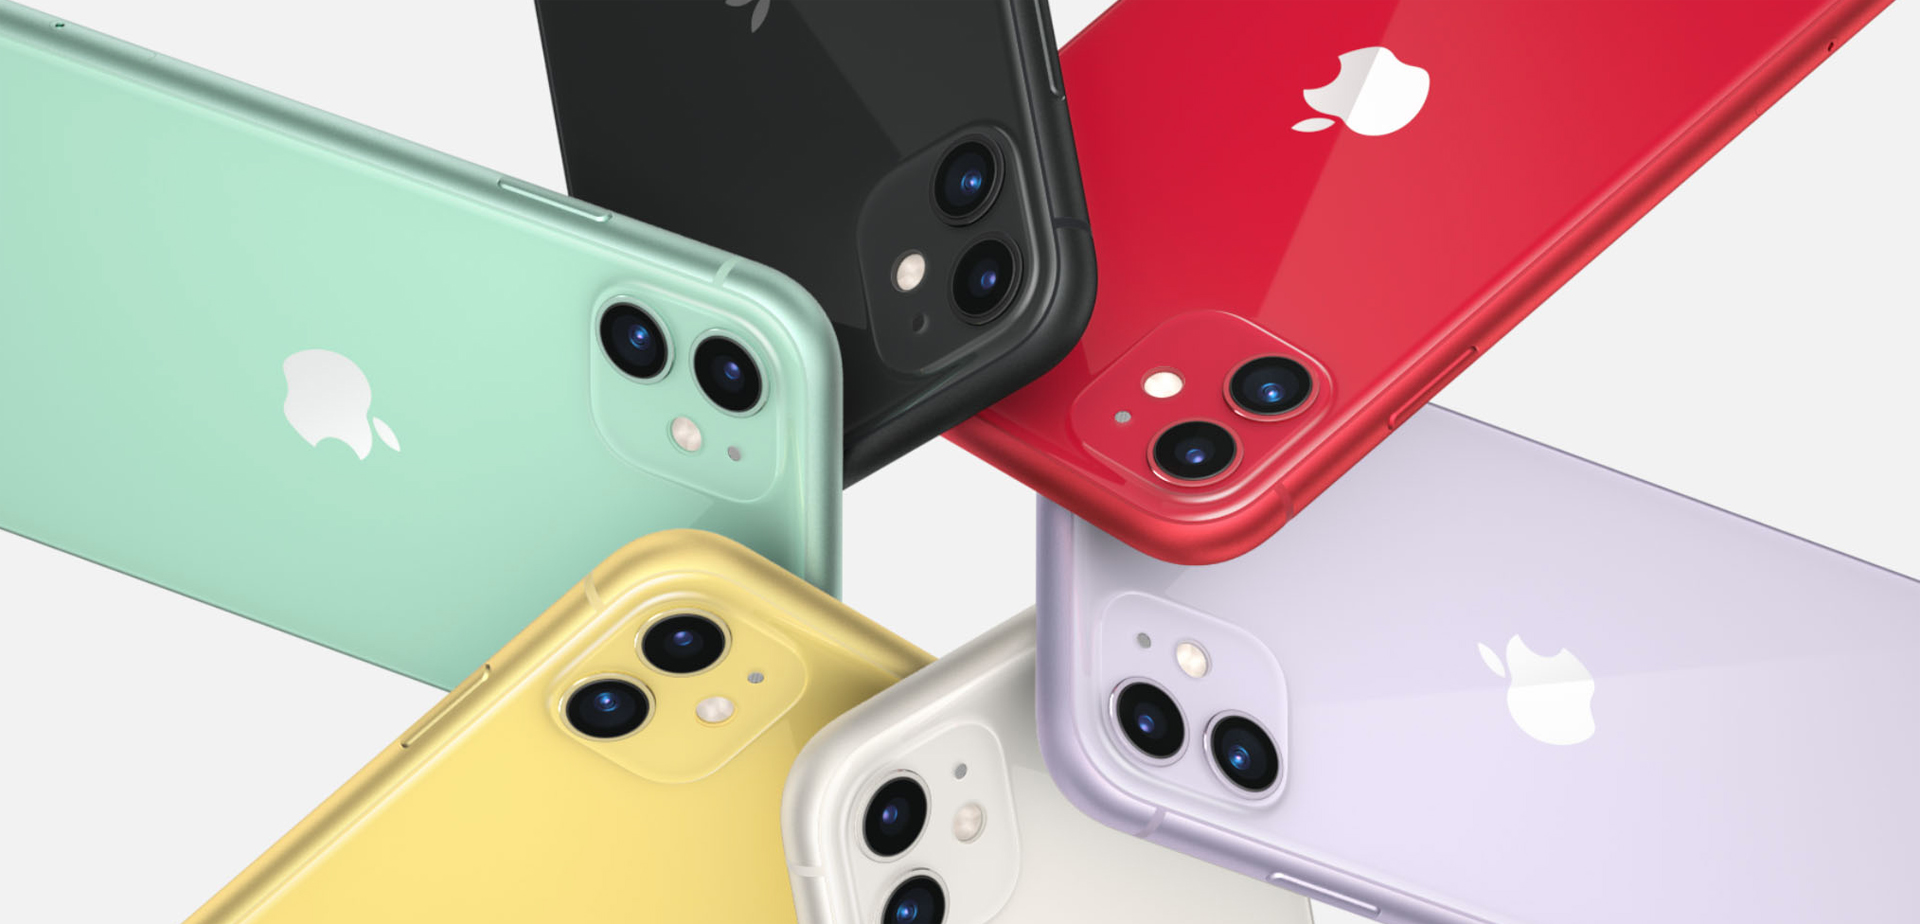 fundas iPhone originales - fundas iPhone bonitas Fundas para